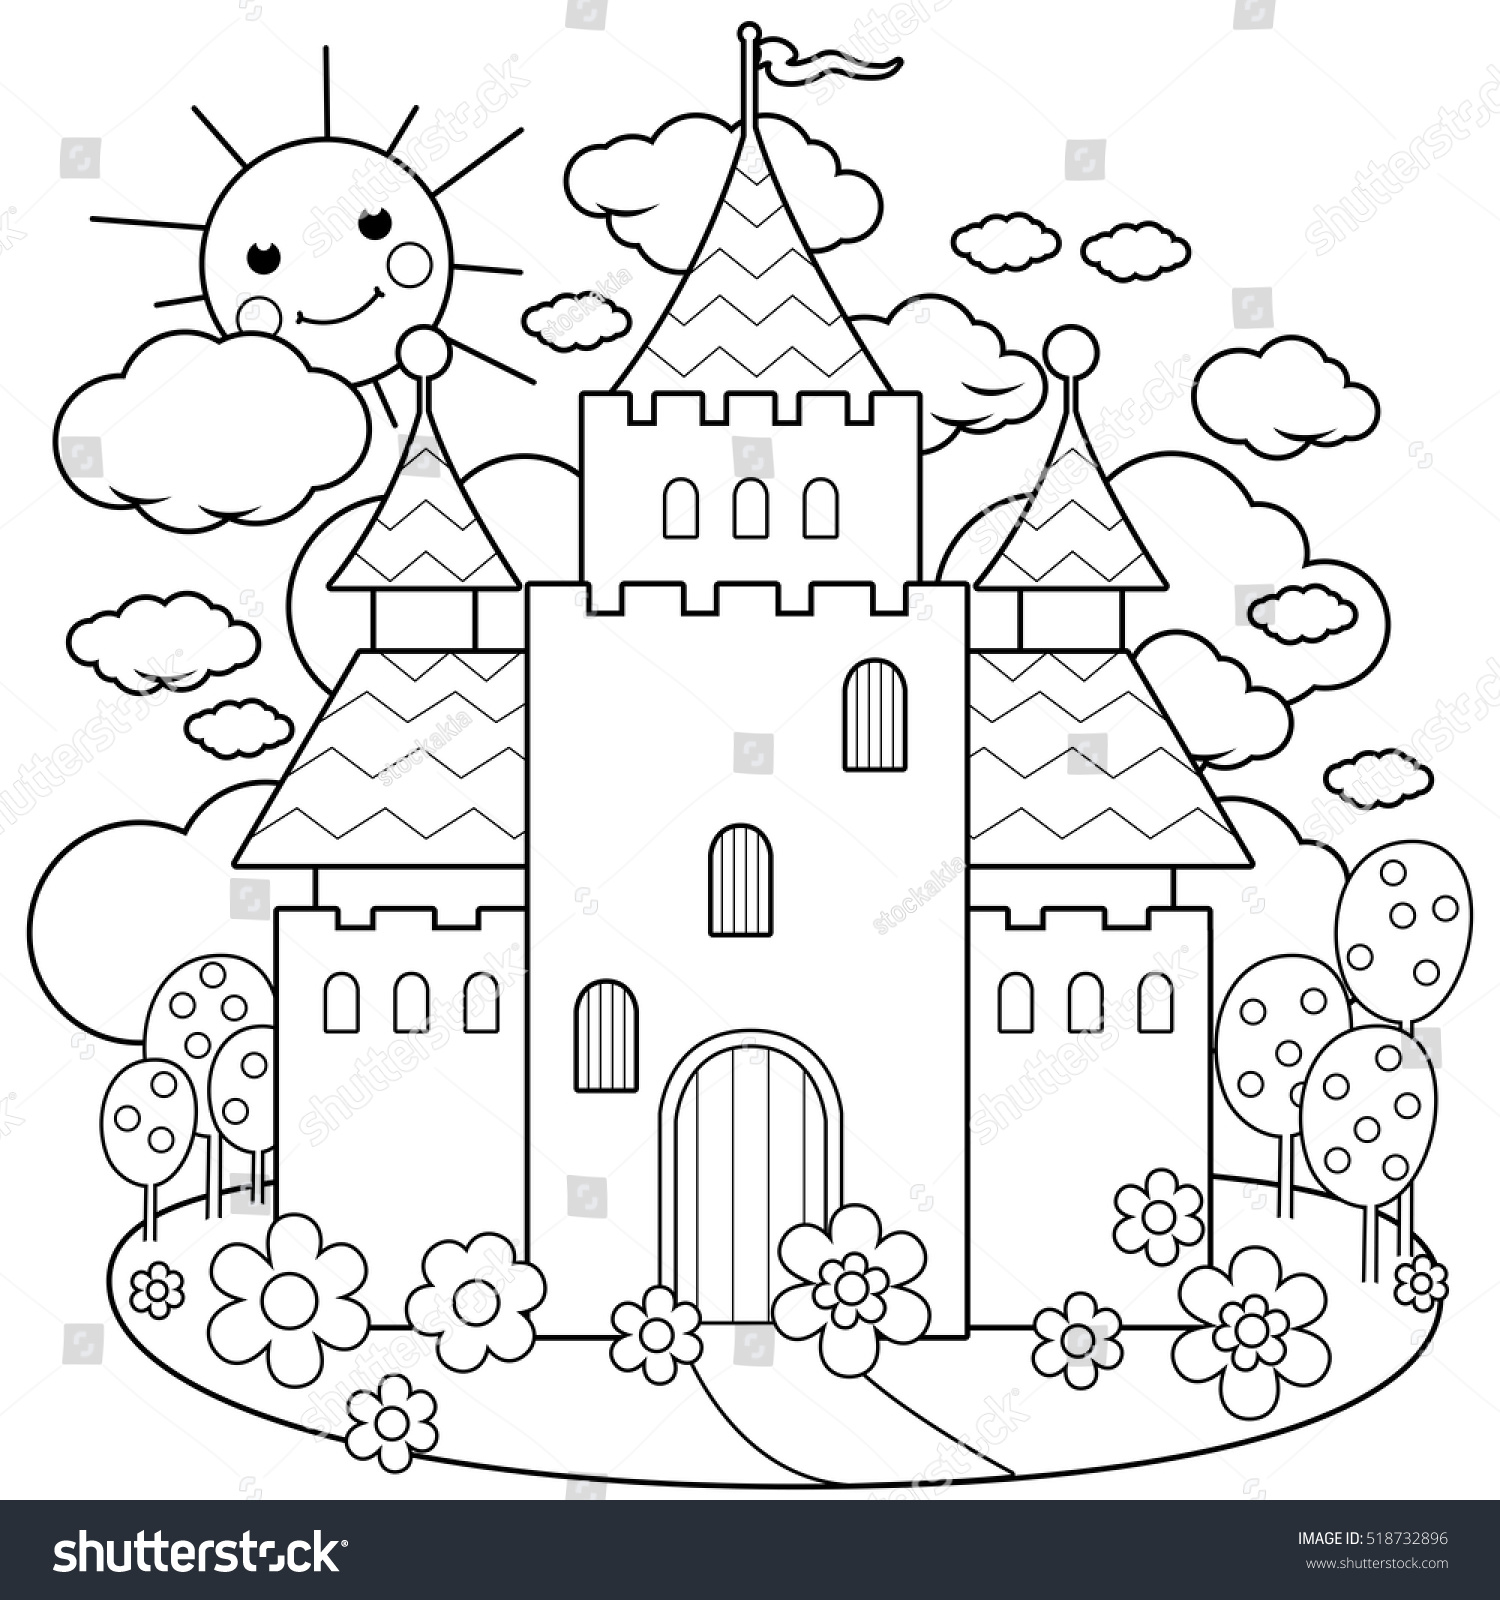 fairy tale castle flowers coloring page stock vector 518732896